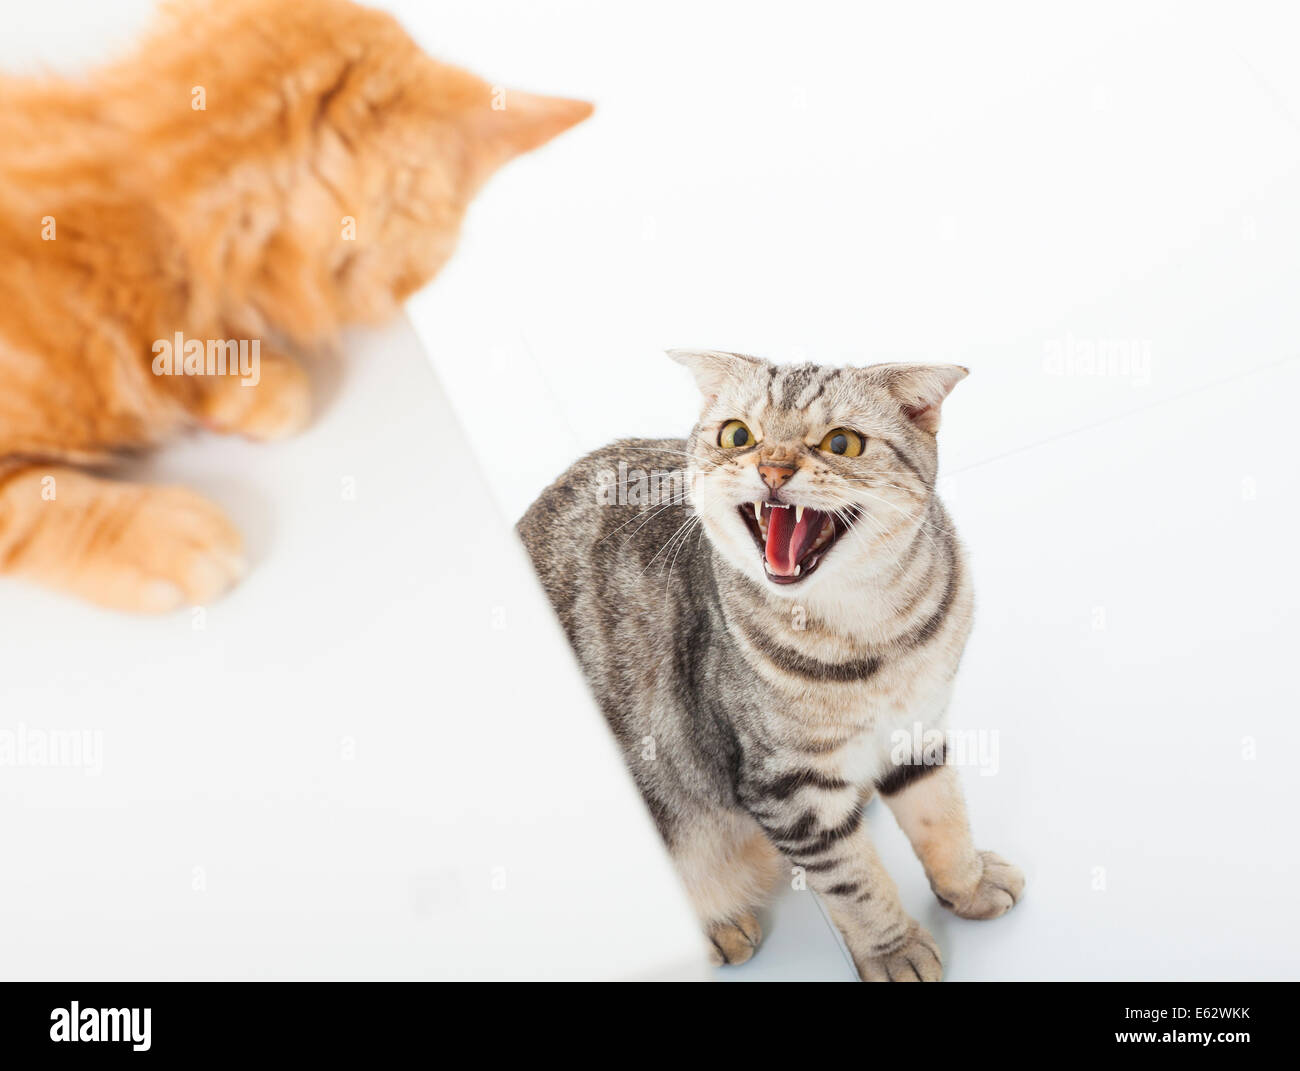 white fang conflict